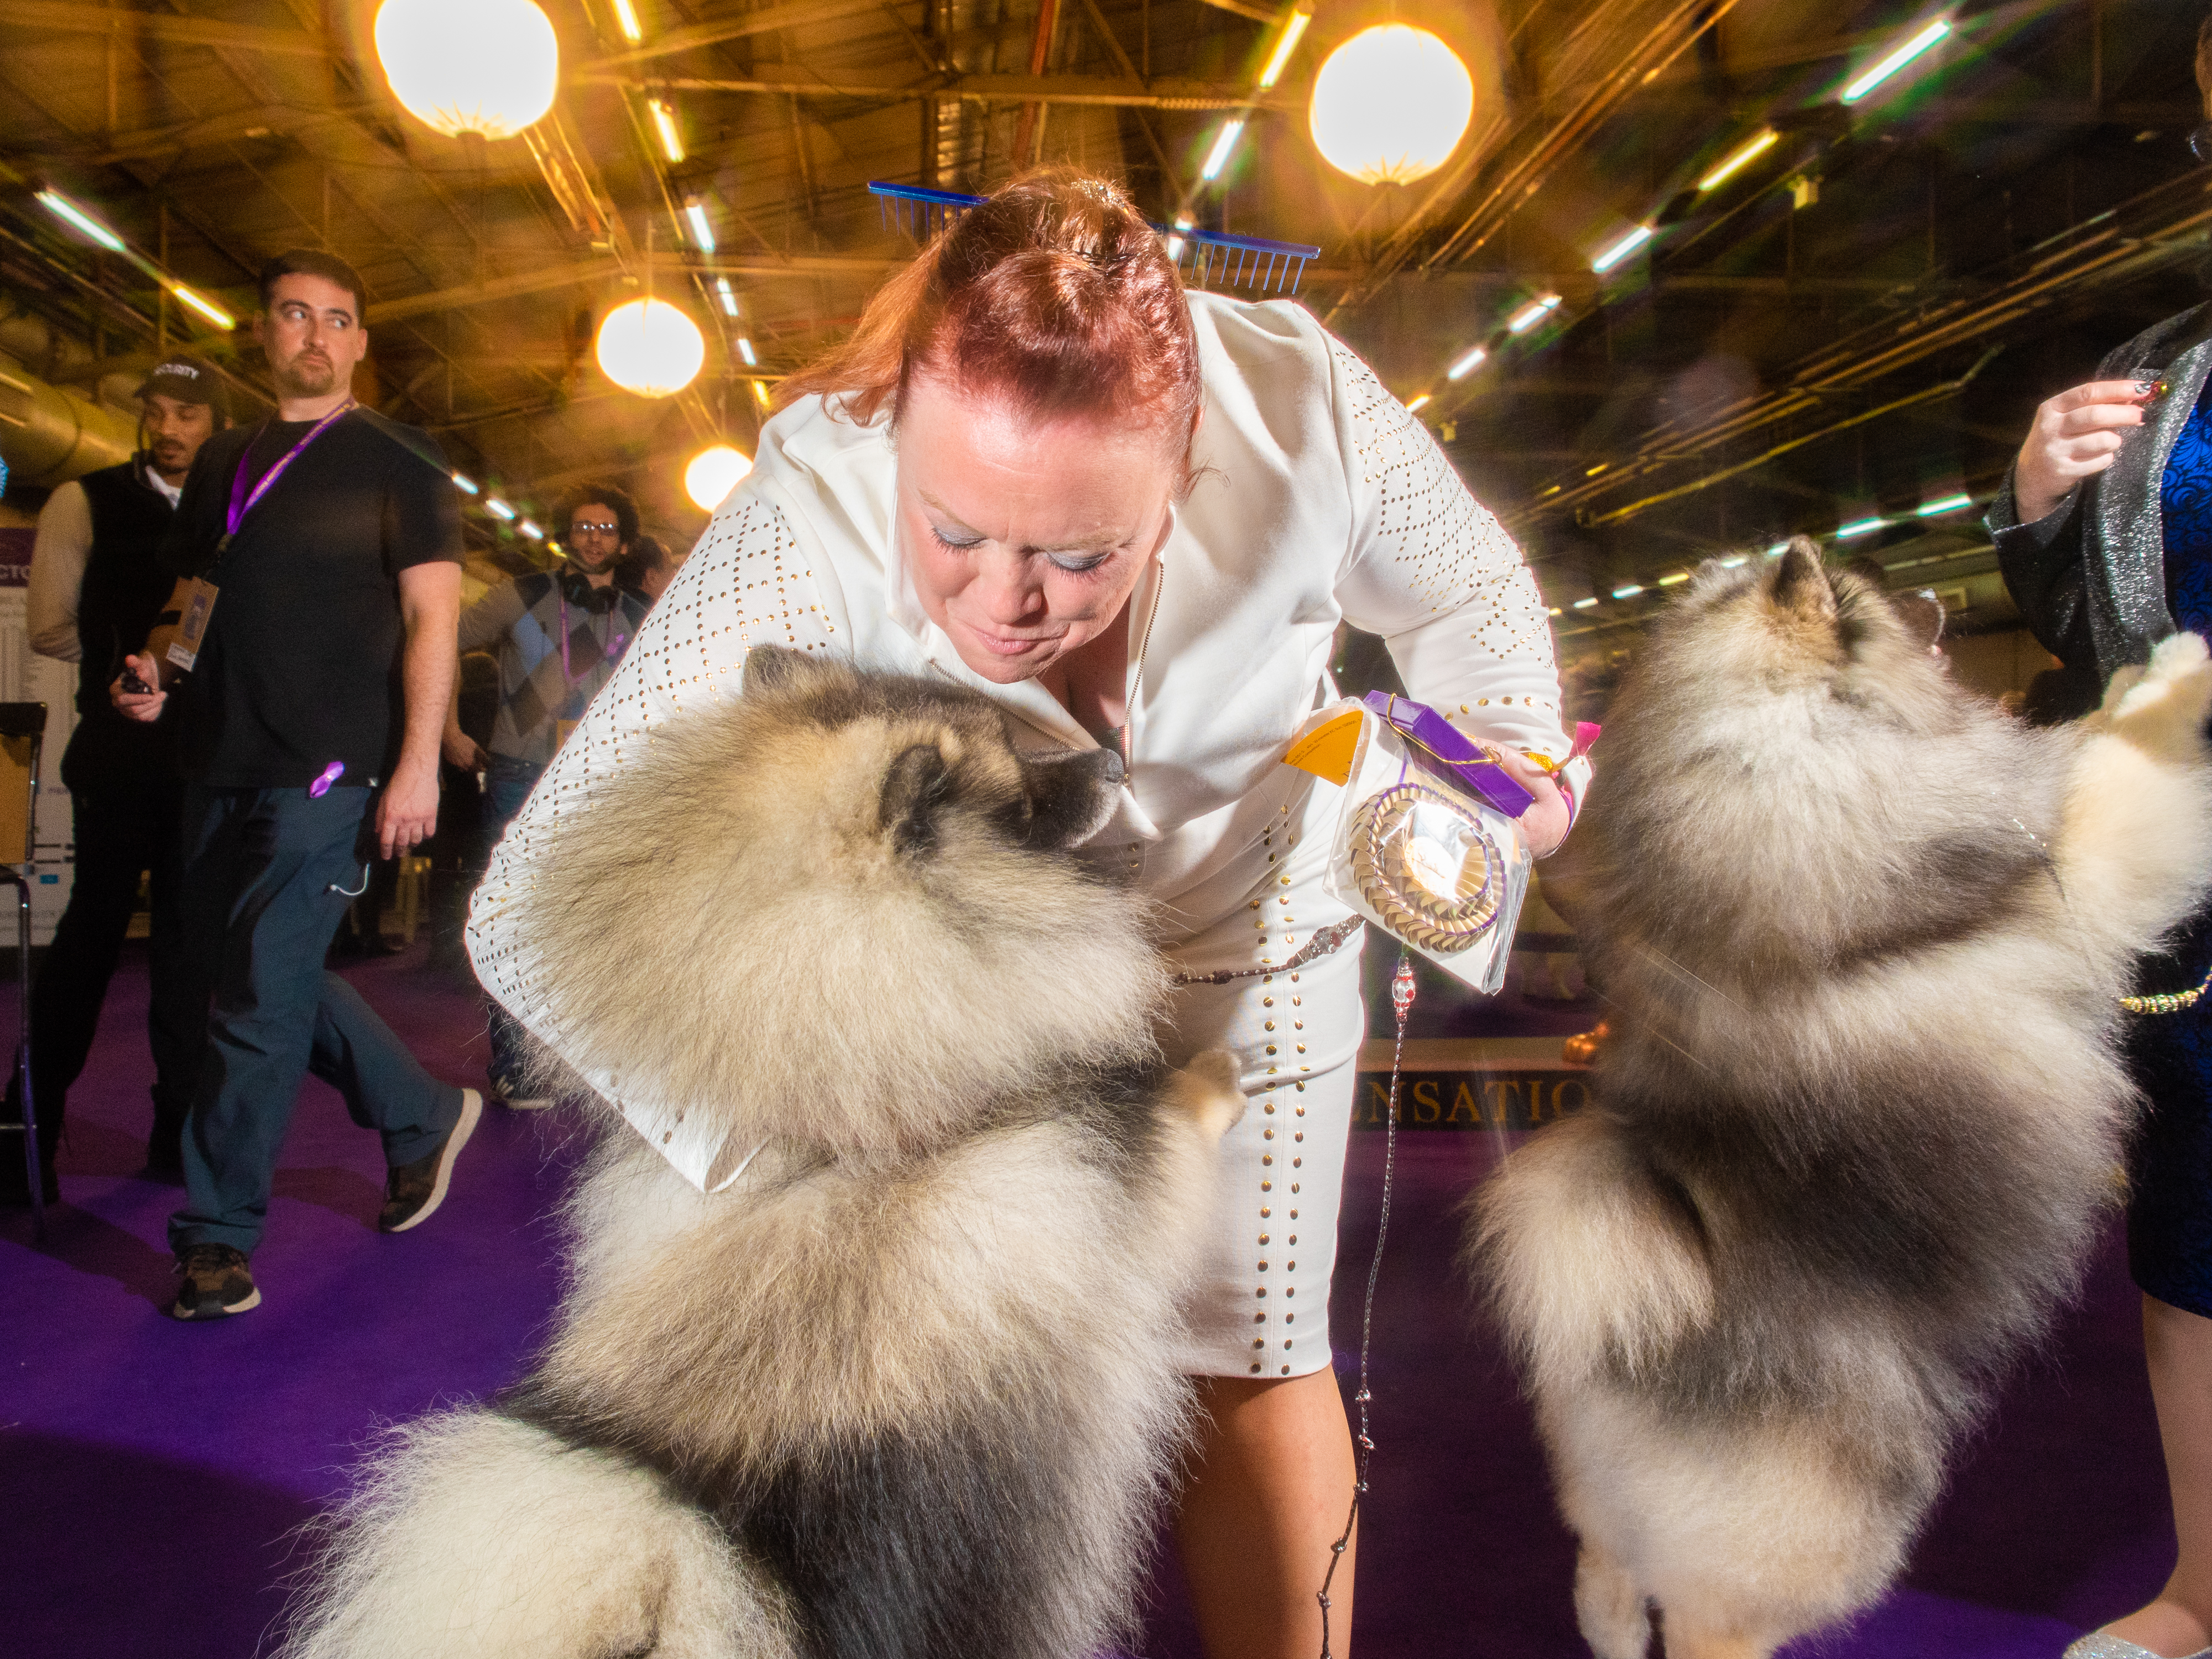 A Keeshond and their handler share a moment at Pier 94